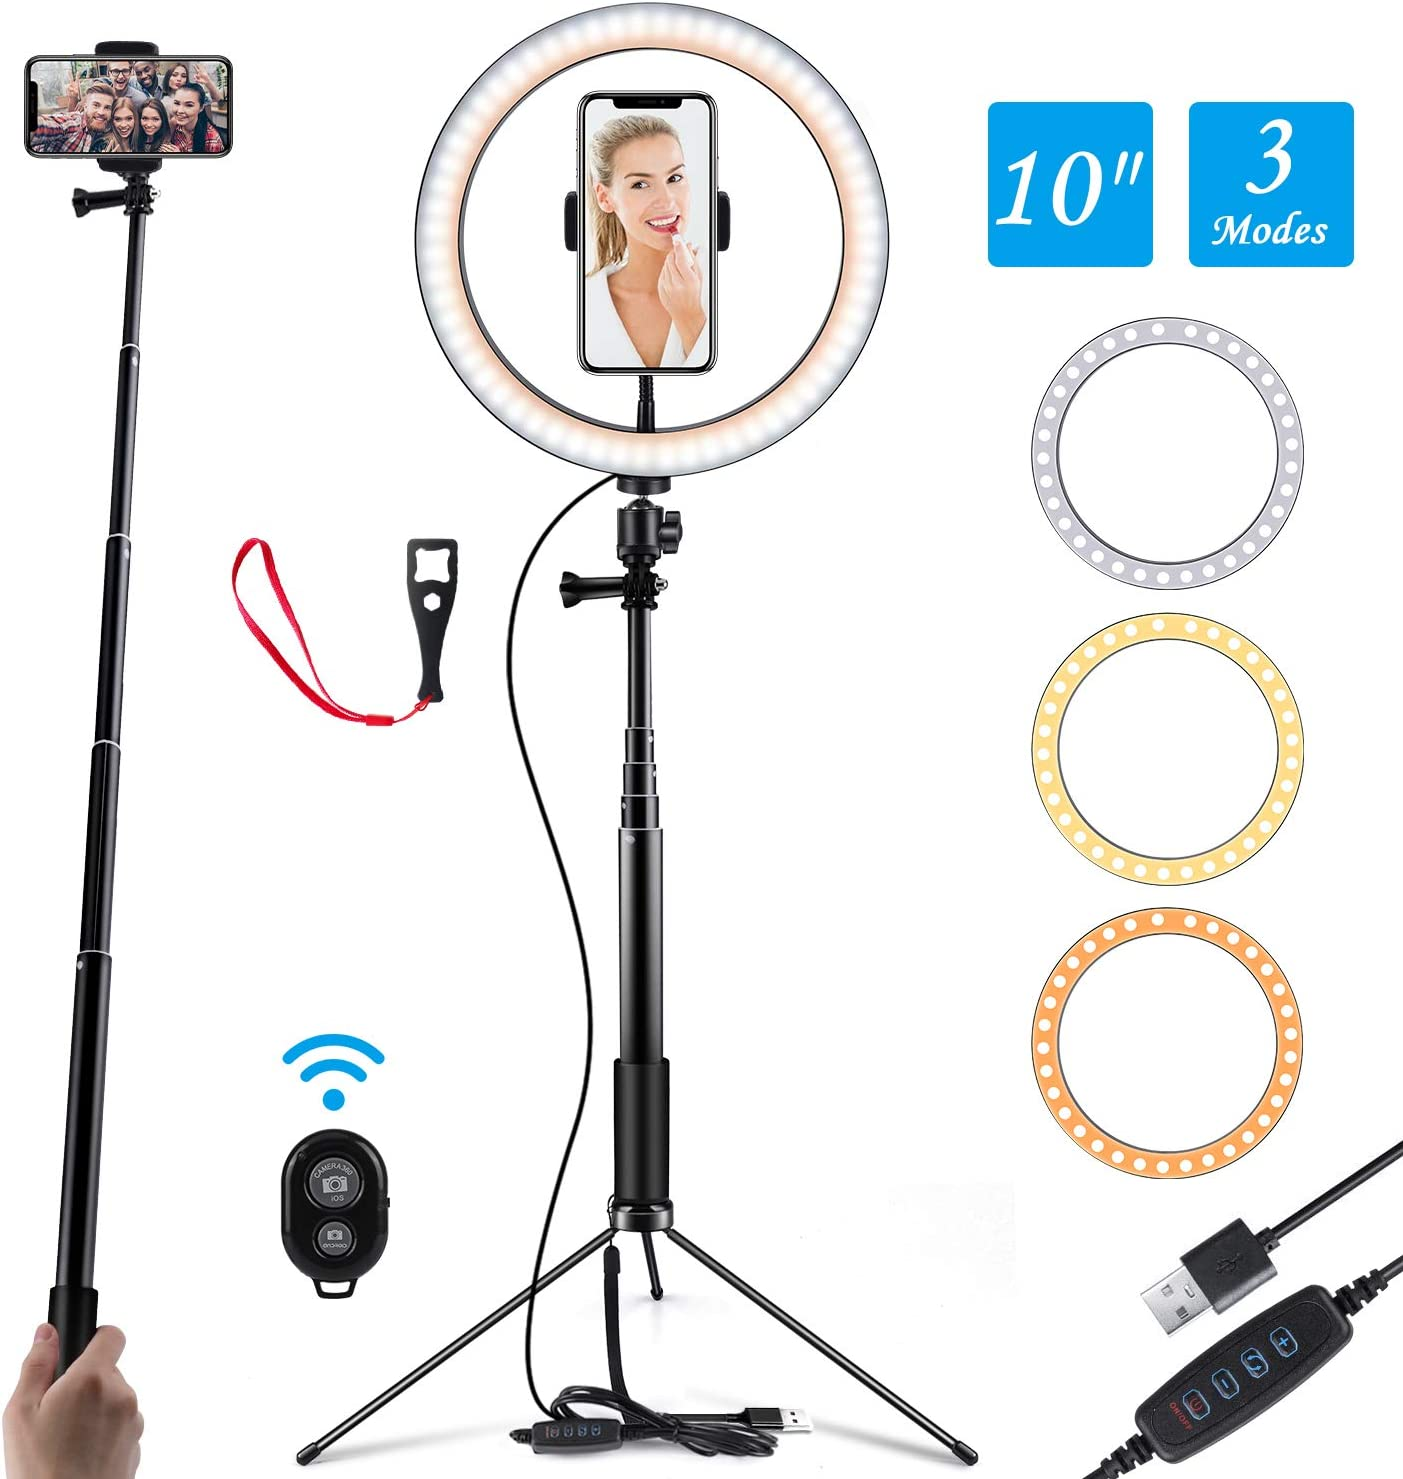 """Ring Light 10"""" Selfie Light Ring with Adjustable Bracket (14.56'' to 65'') Remote Control 3 Modes & 10 Brightness 120 Bulbs Dimmable Desktop Ringlight for YouTube Video/Live Stream/Makeup/Photography"""